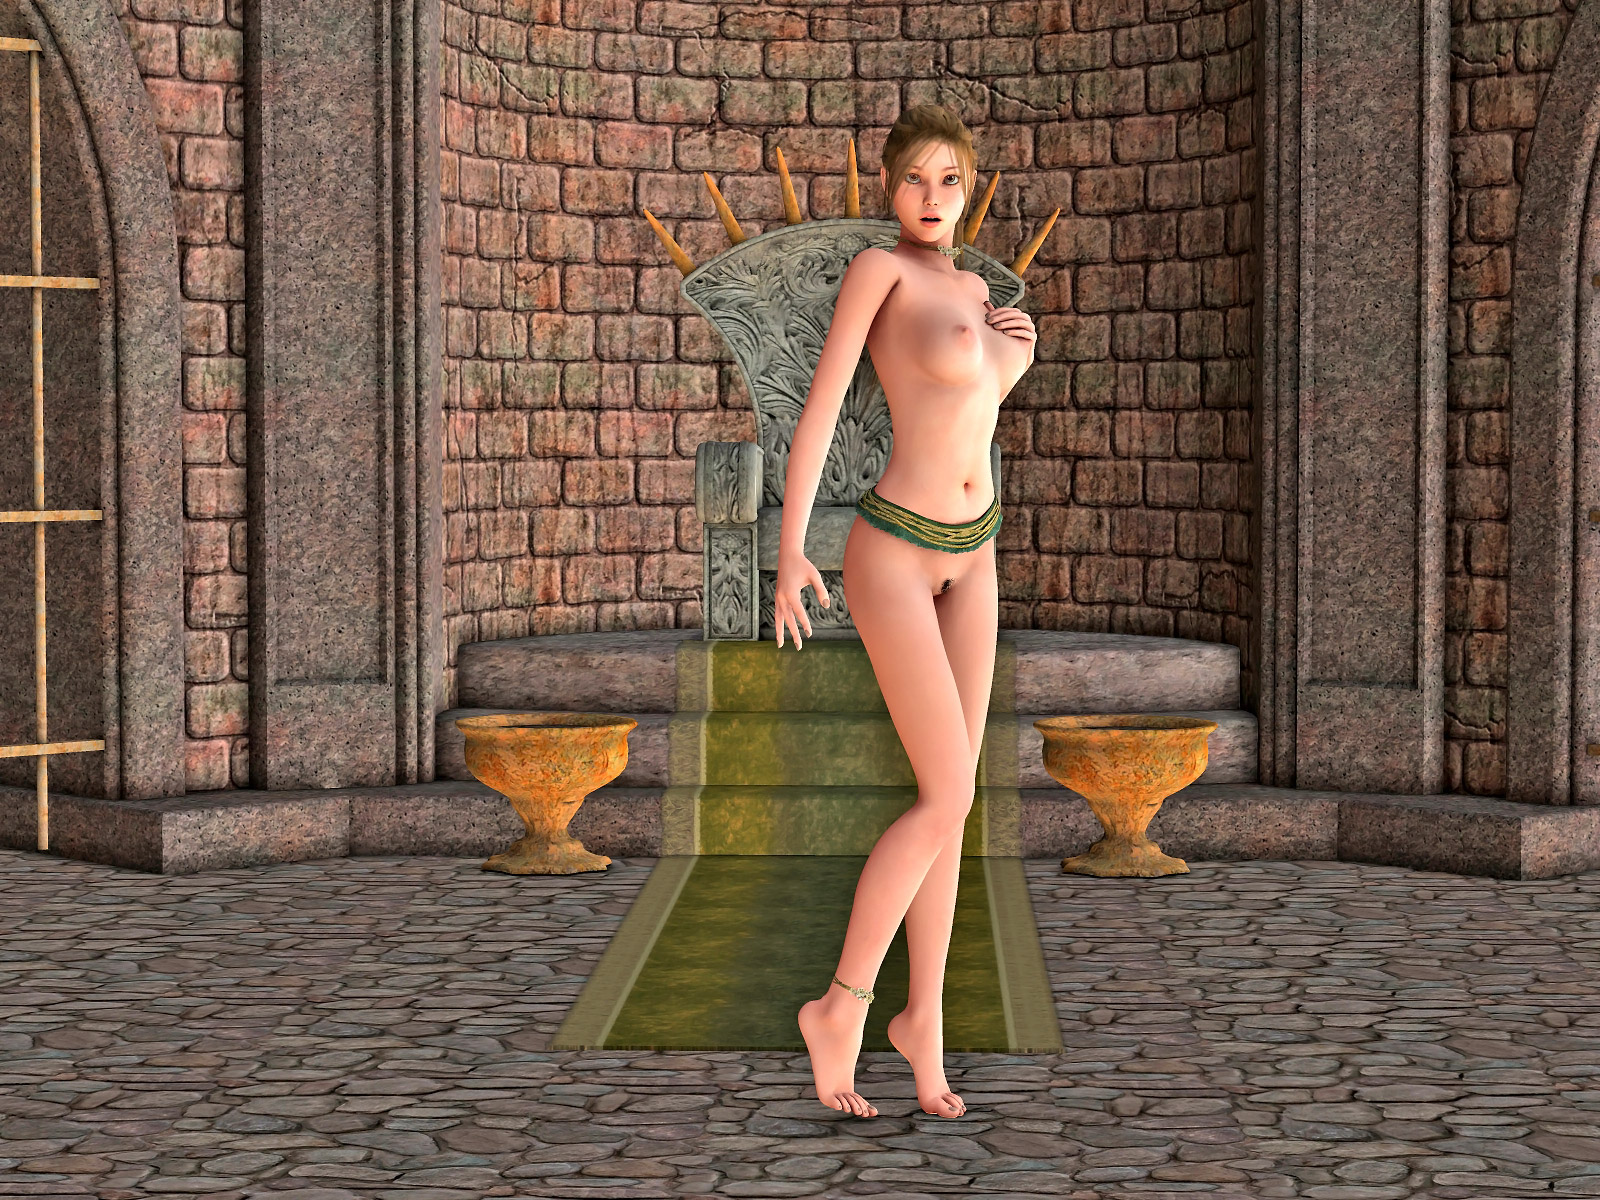 Nude world:hot toon animations sex gallery